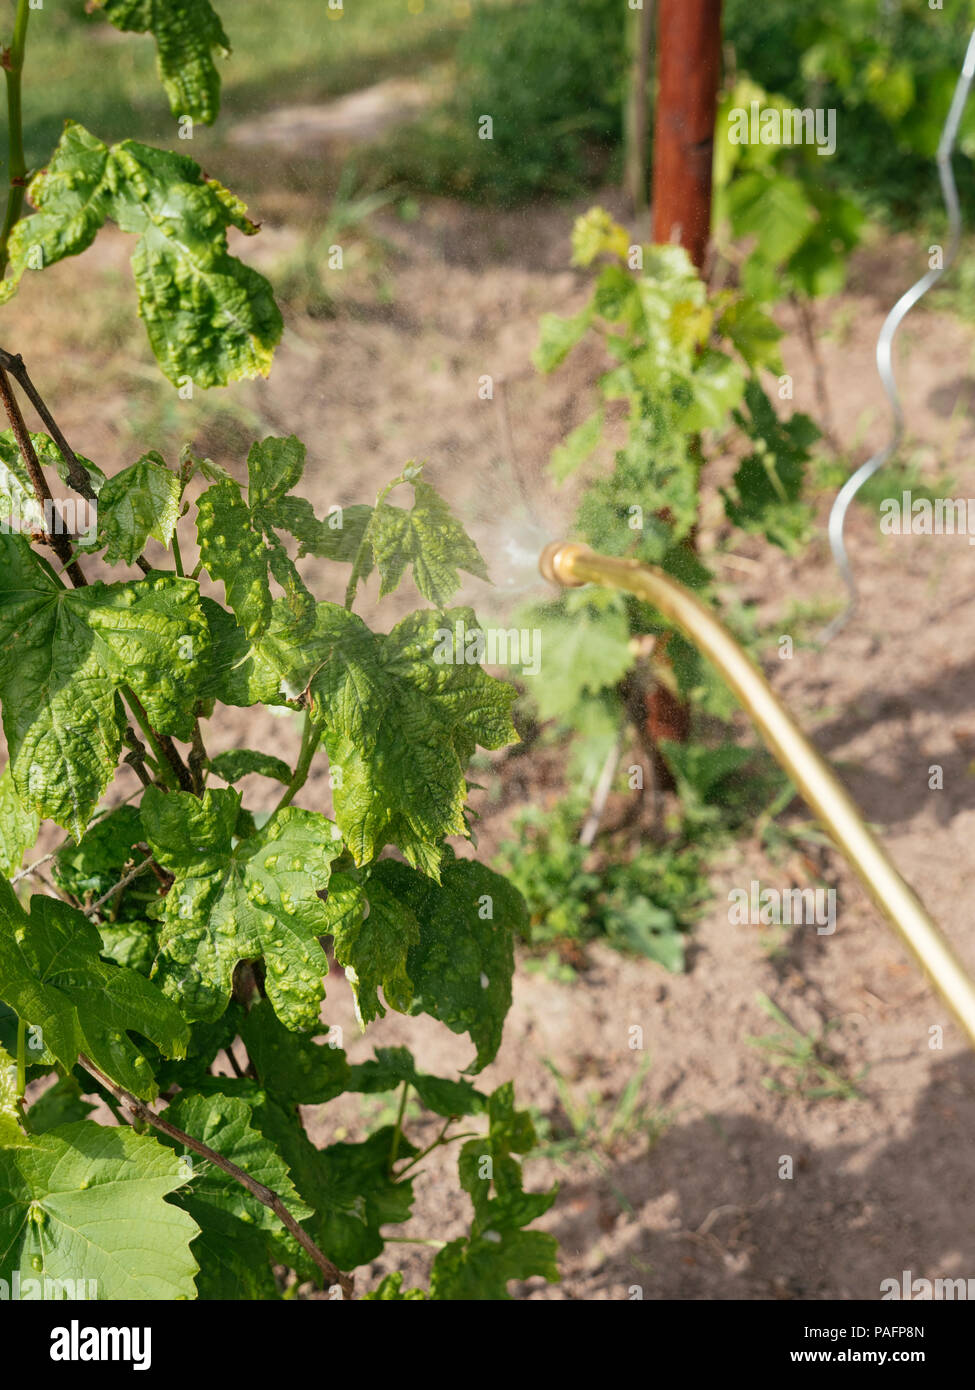 Gardener spraying grapevines leaves with a sulfur-based fungicide against mildew. Stock Photo